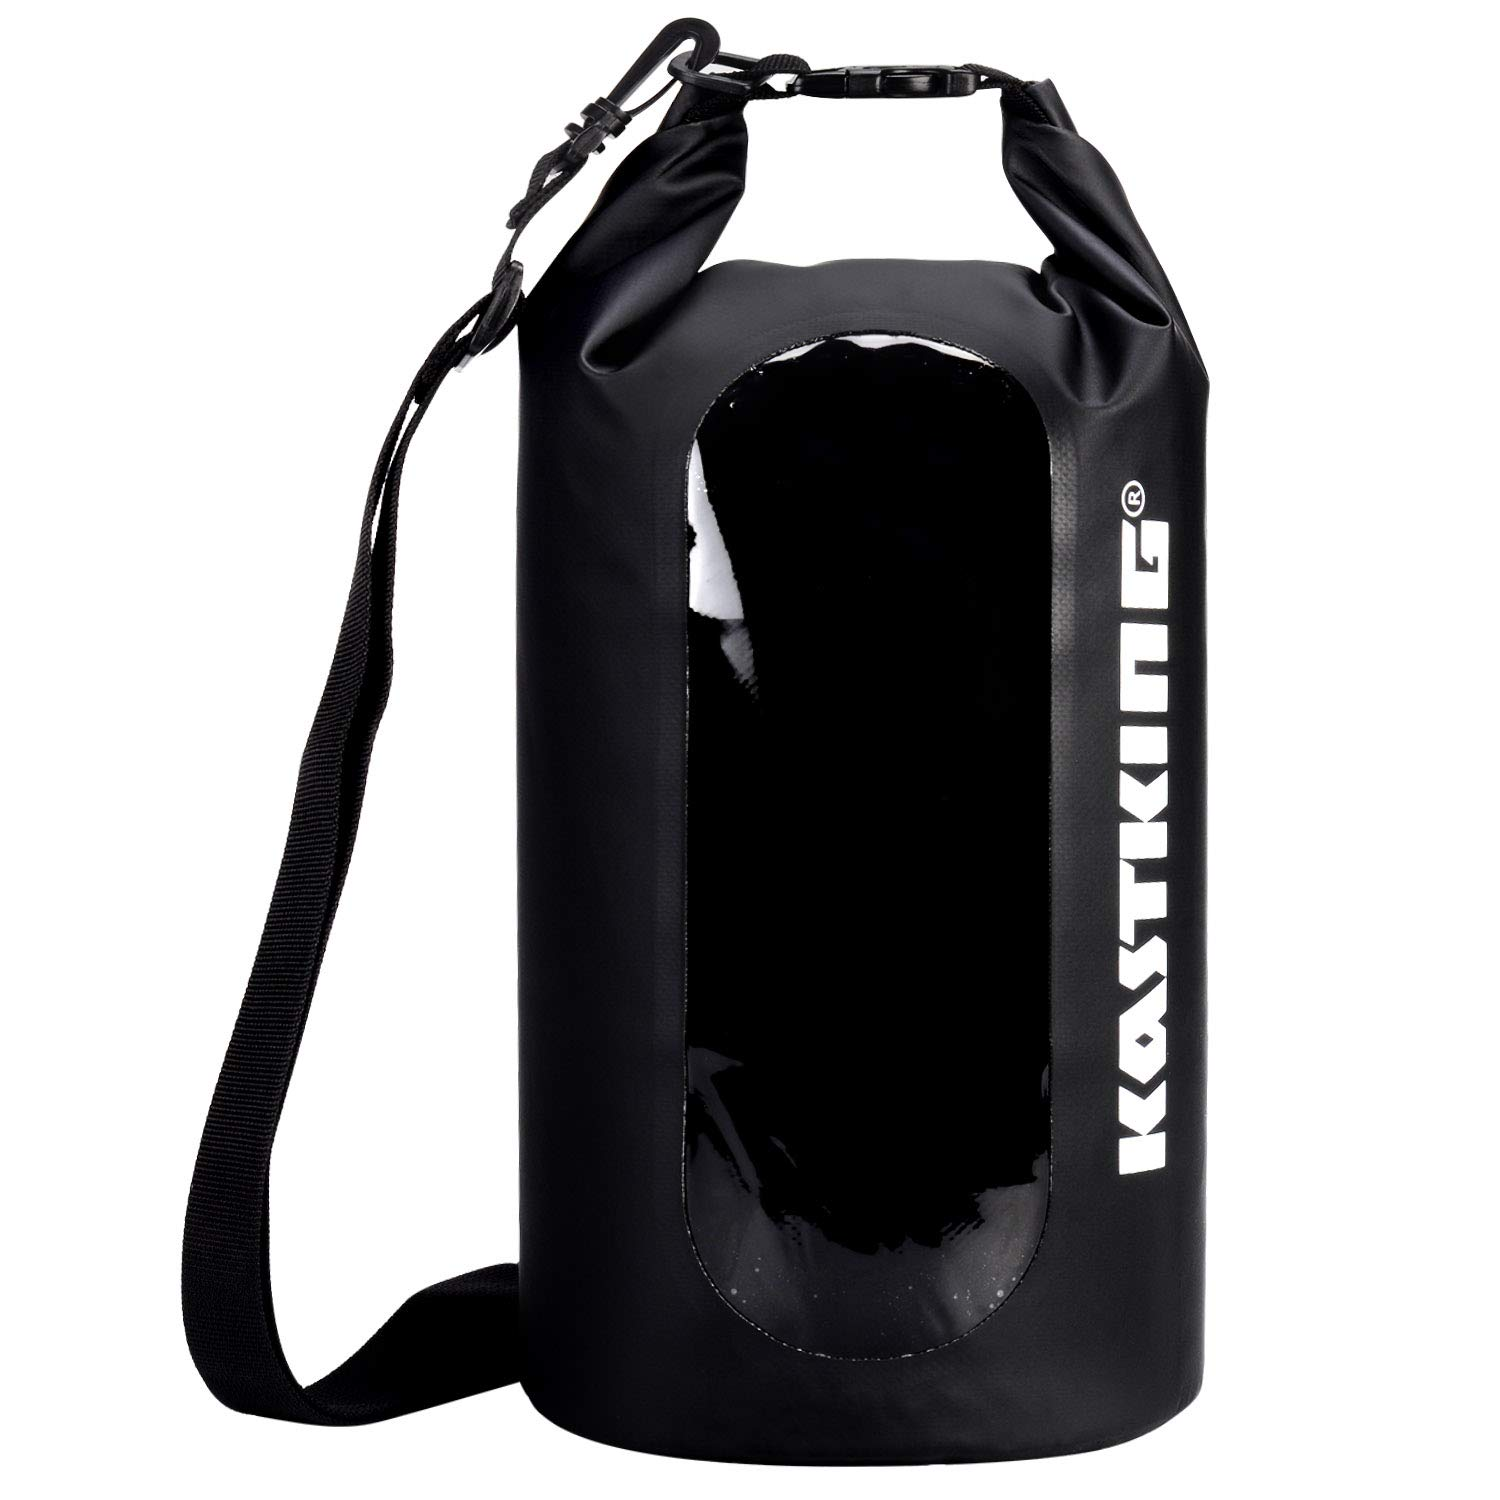 KastKing Floating Waterproof Dry Bag, Black, 10L